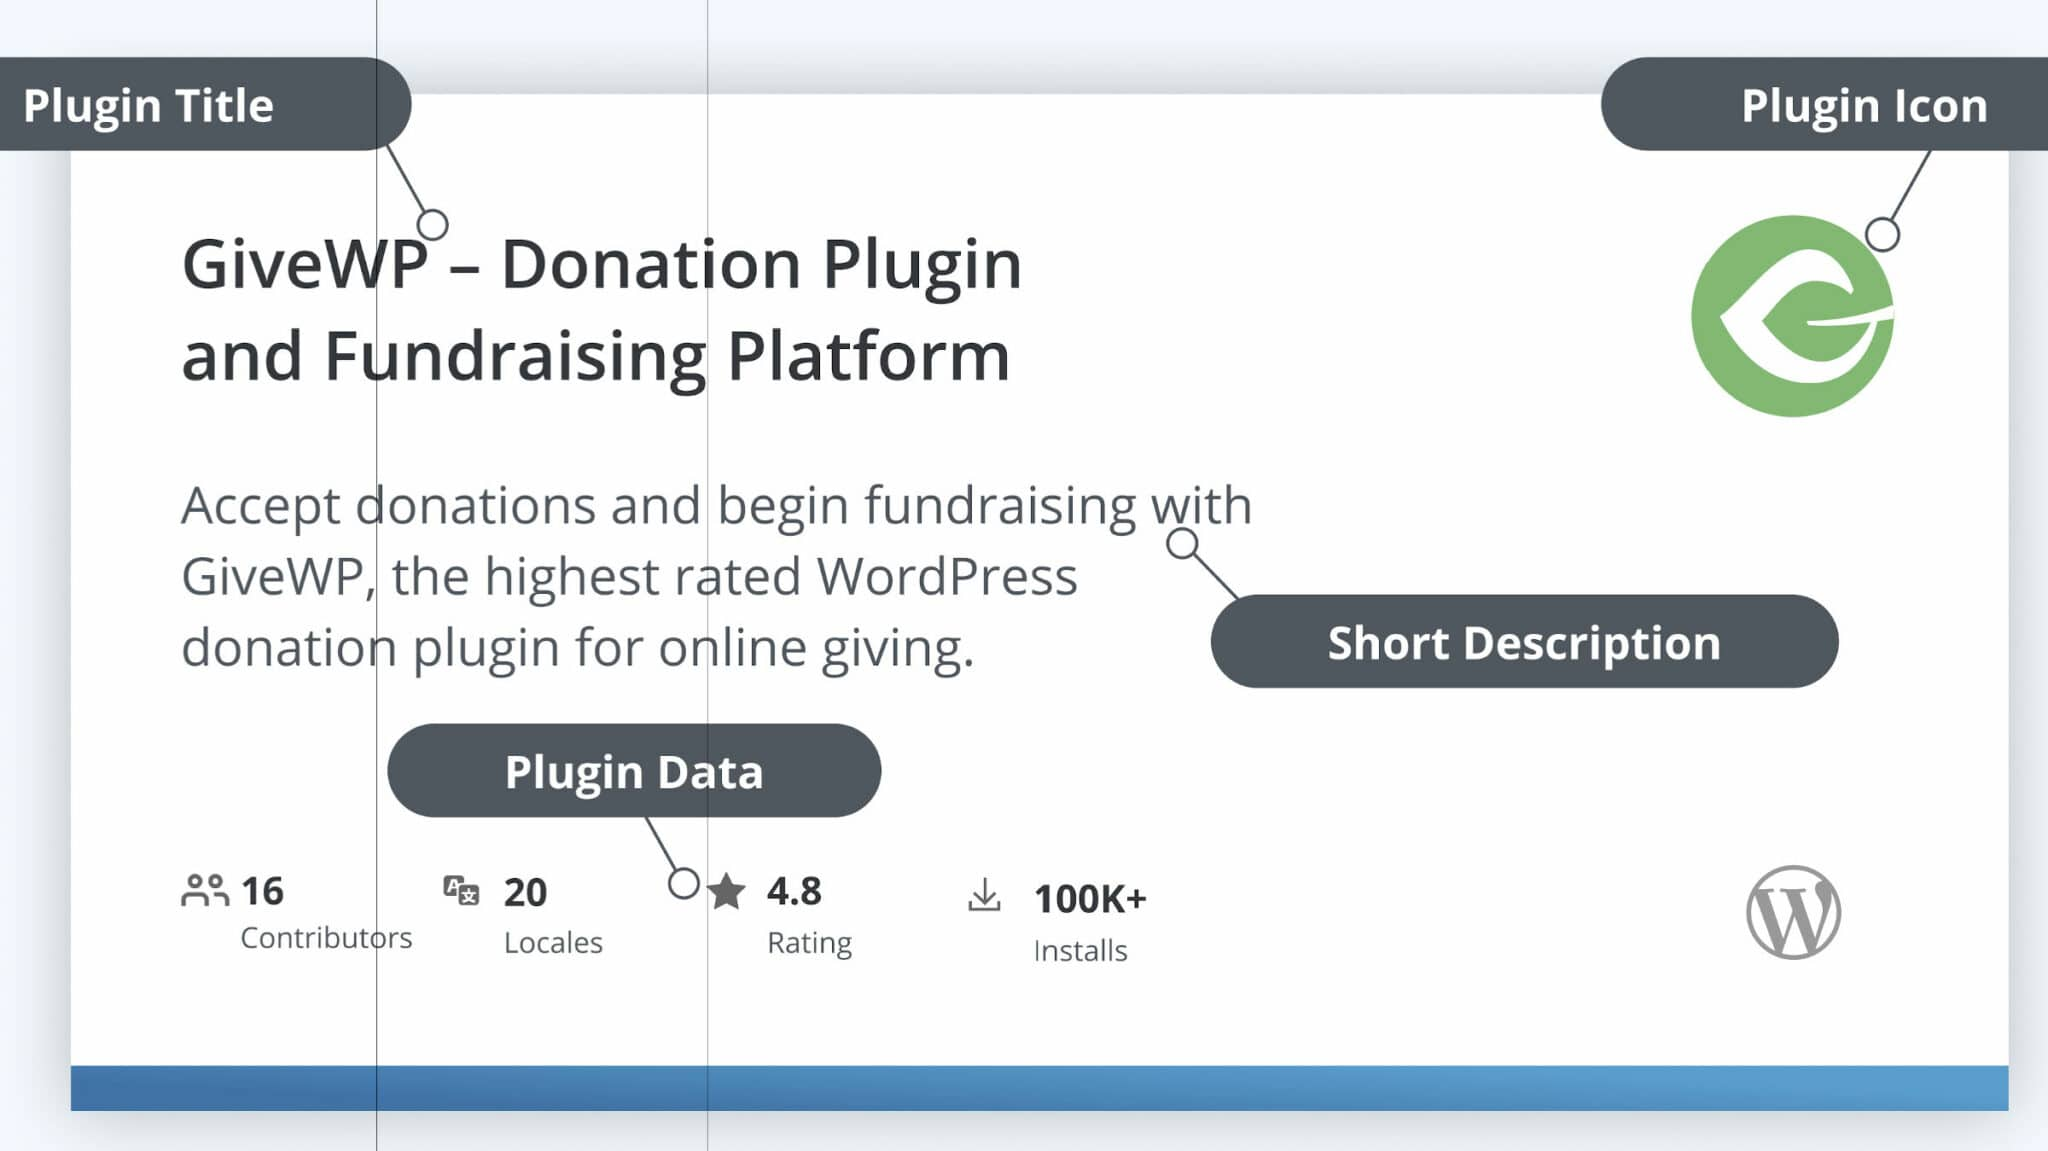 Dynamic Social Images for Plugins, Themes, and Patterns? Yes, Please